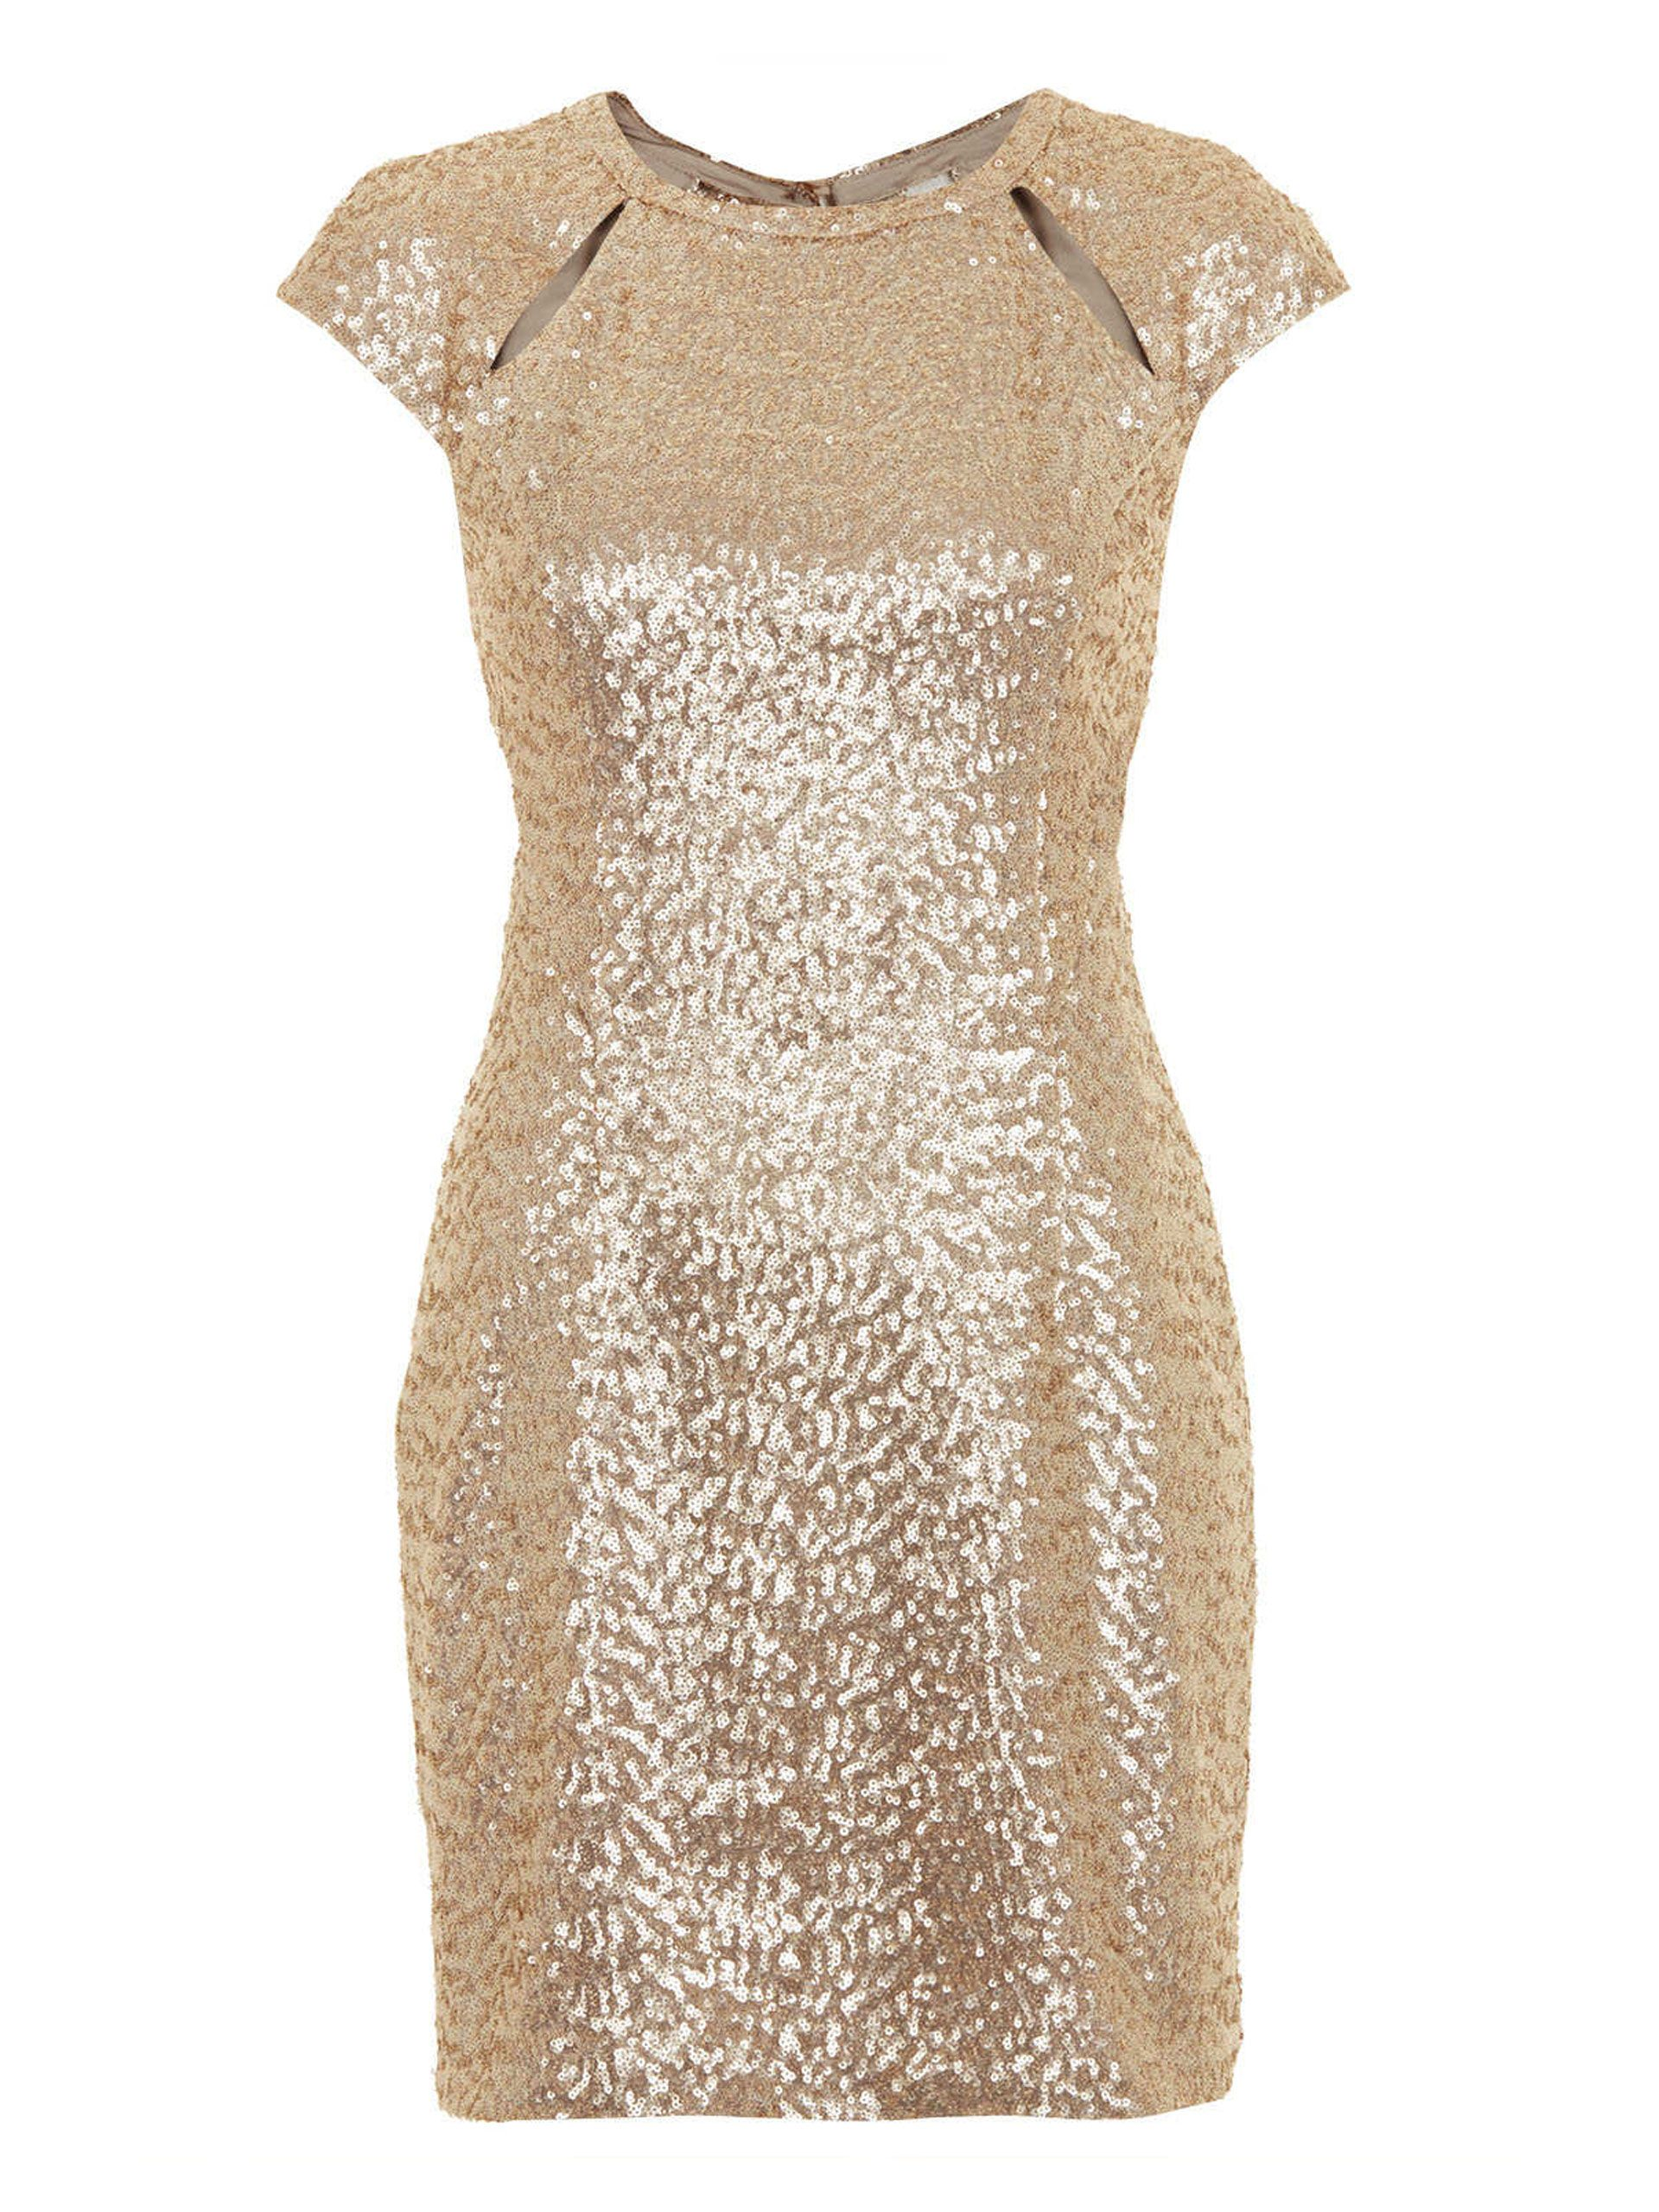 529ee4f3 100 Party Dresses Under $500